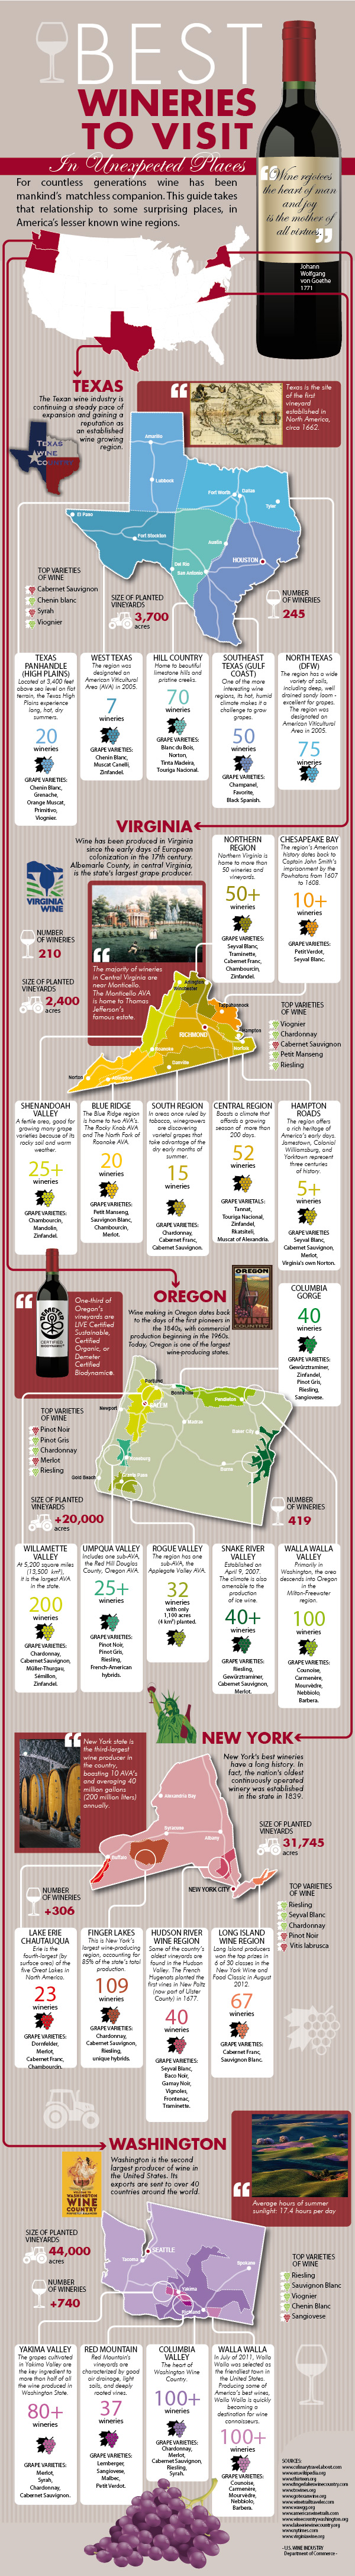 10. The Unknown Wineries